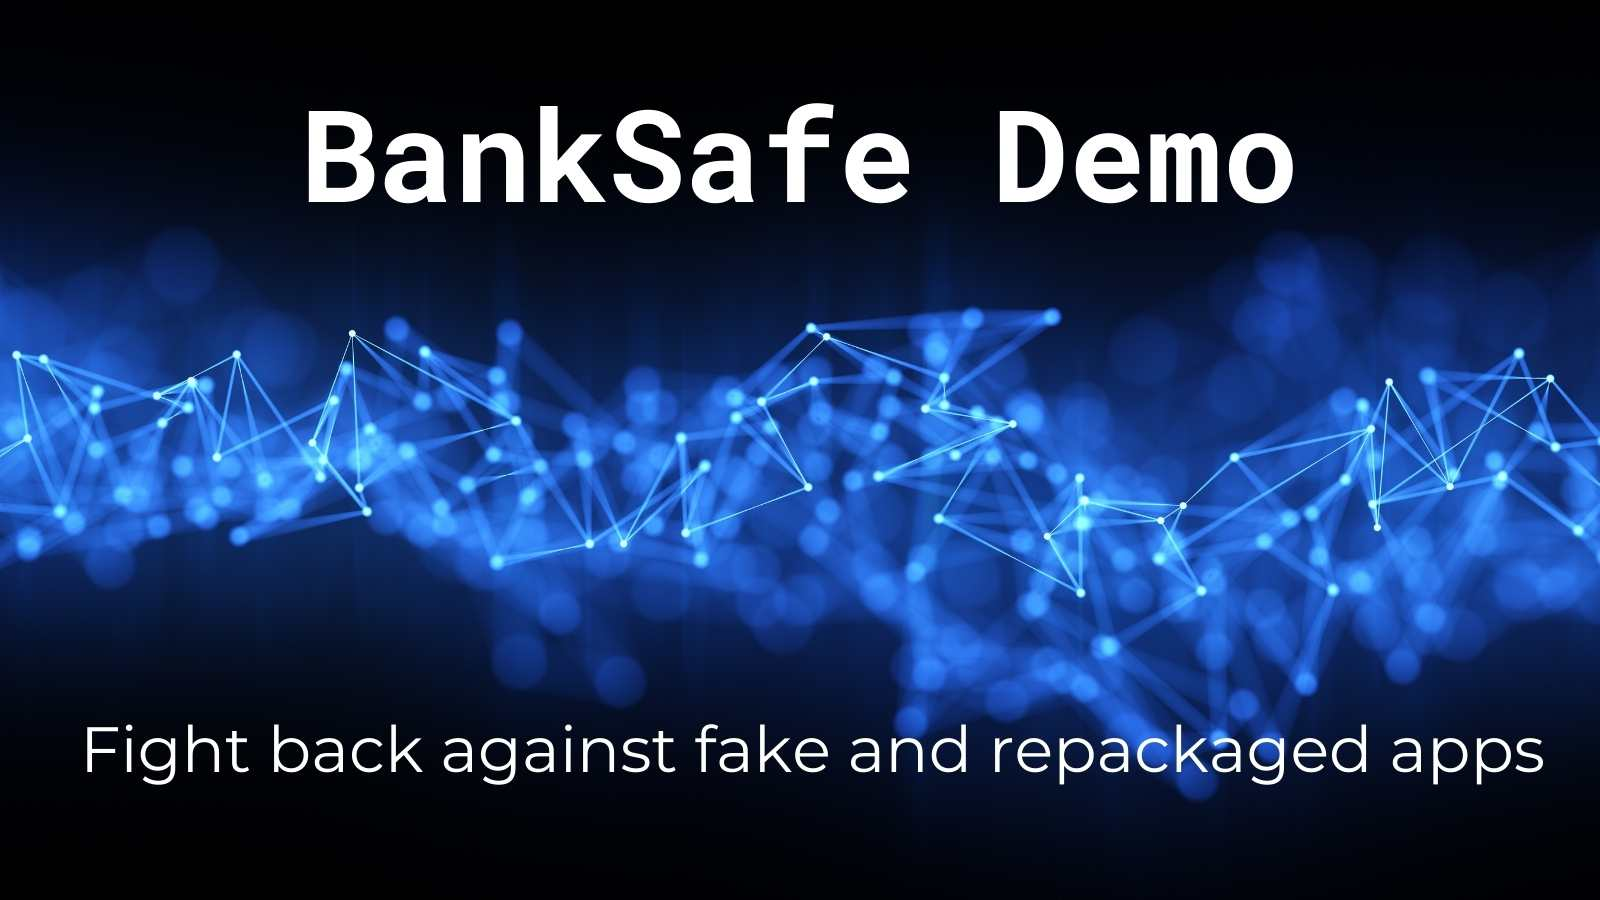 Fintech concept. Futuristic digital blockchain background with text 'BankSafe Demo Fight back against fake and repackaged apps.